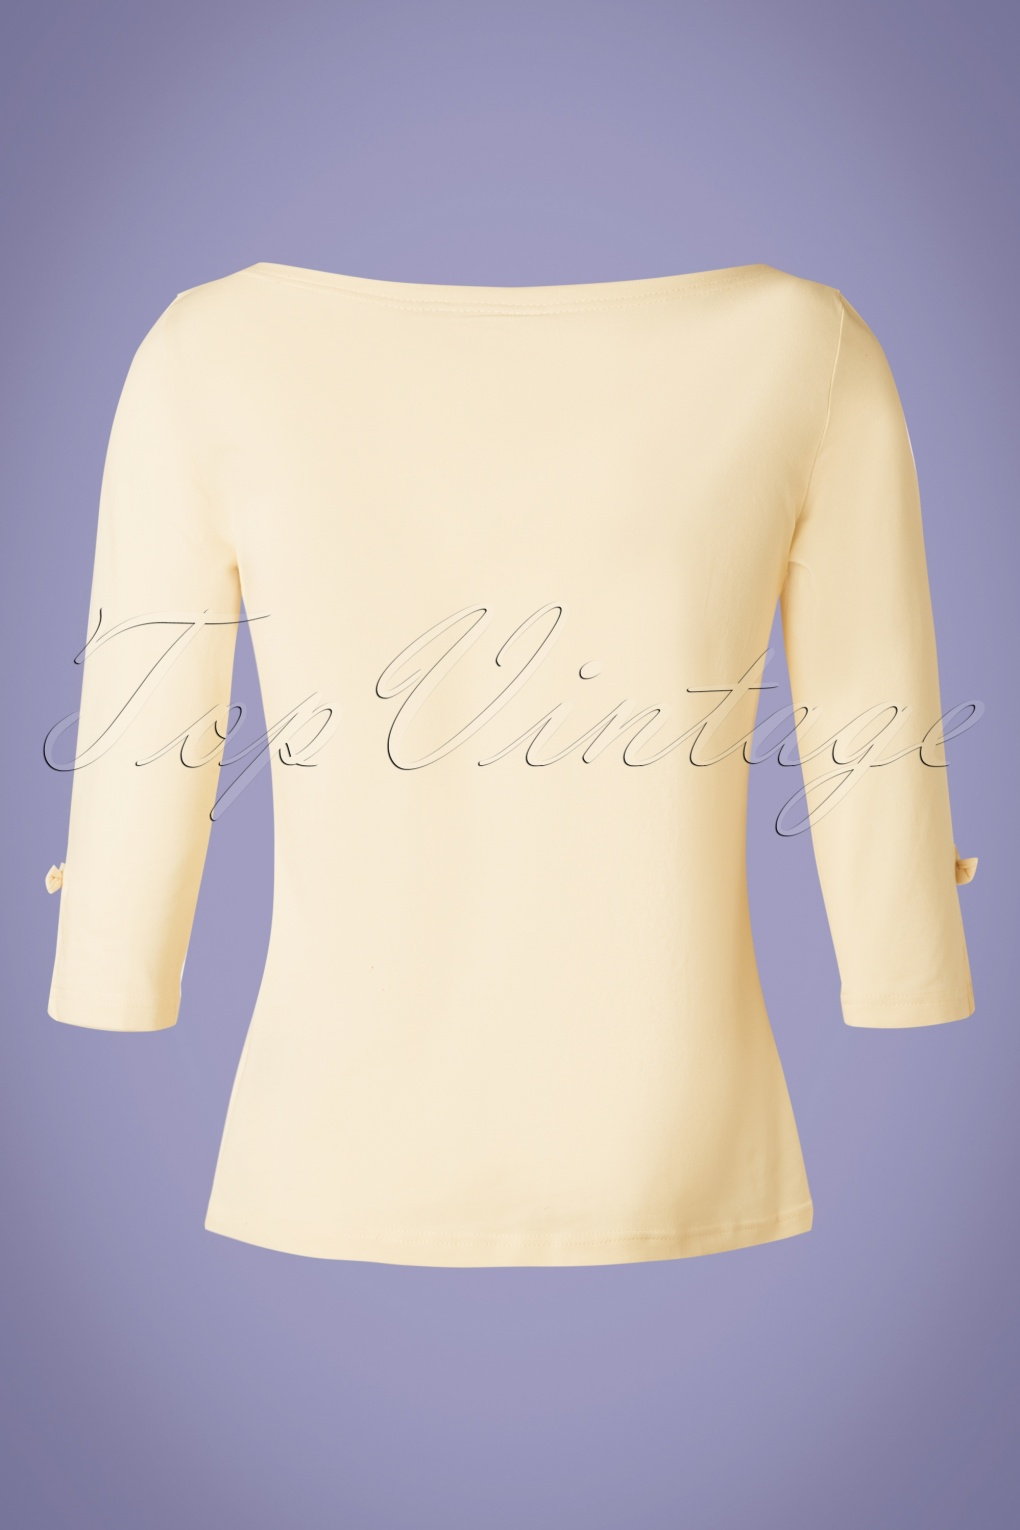 Vintage & Retro Shirts, Halter Tops, Blouses 50s Oonagh Top in Cream £25.84 AT vintagedancer.com